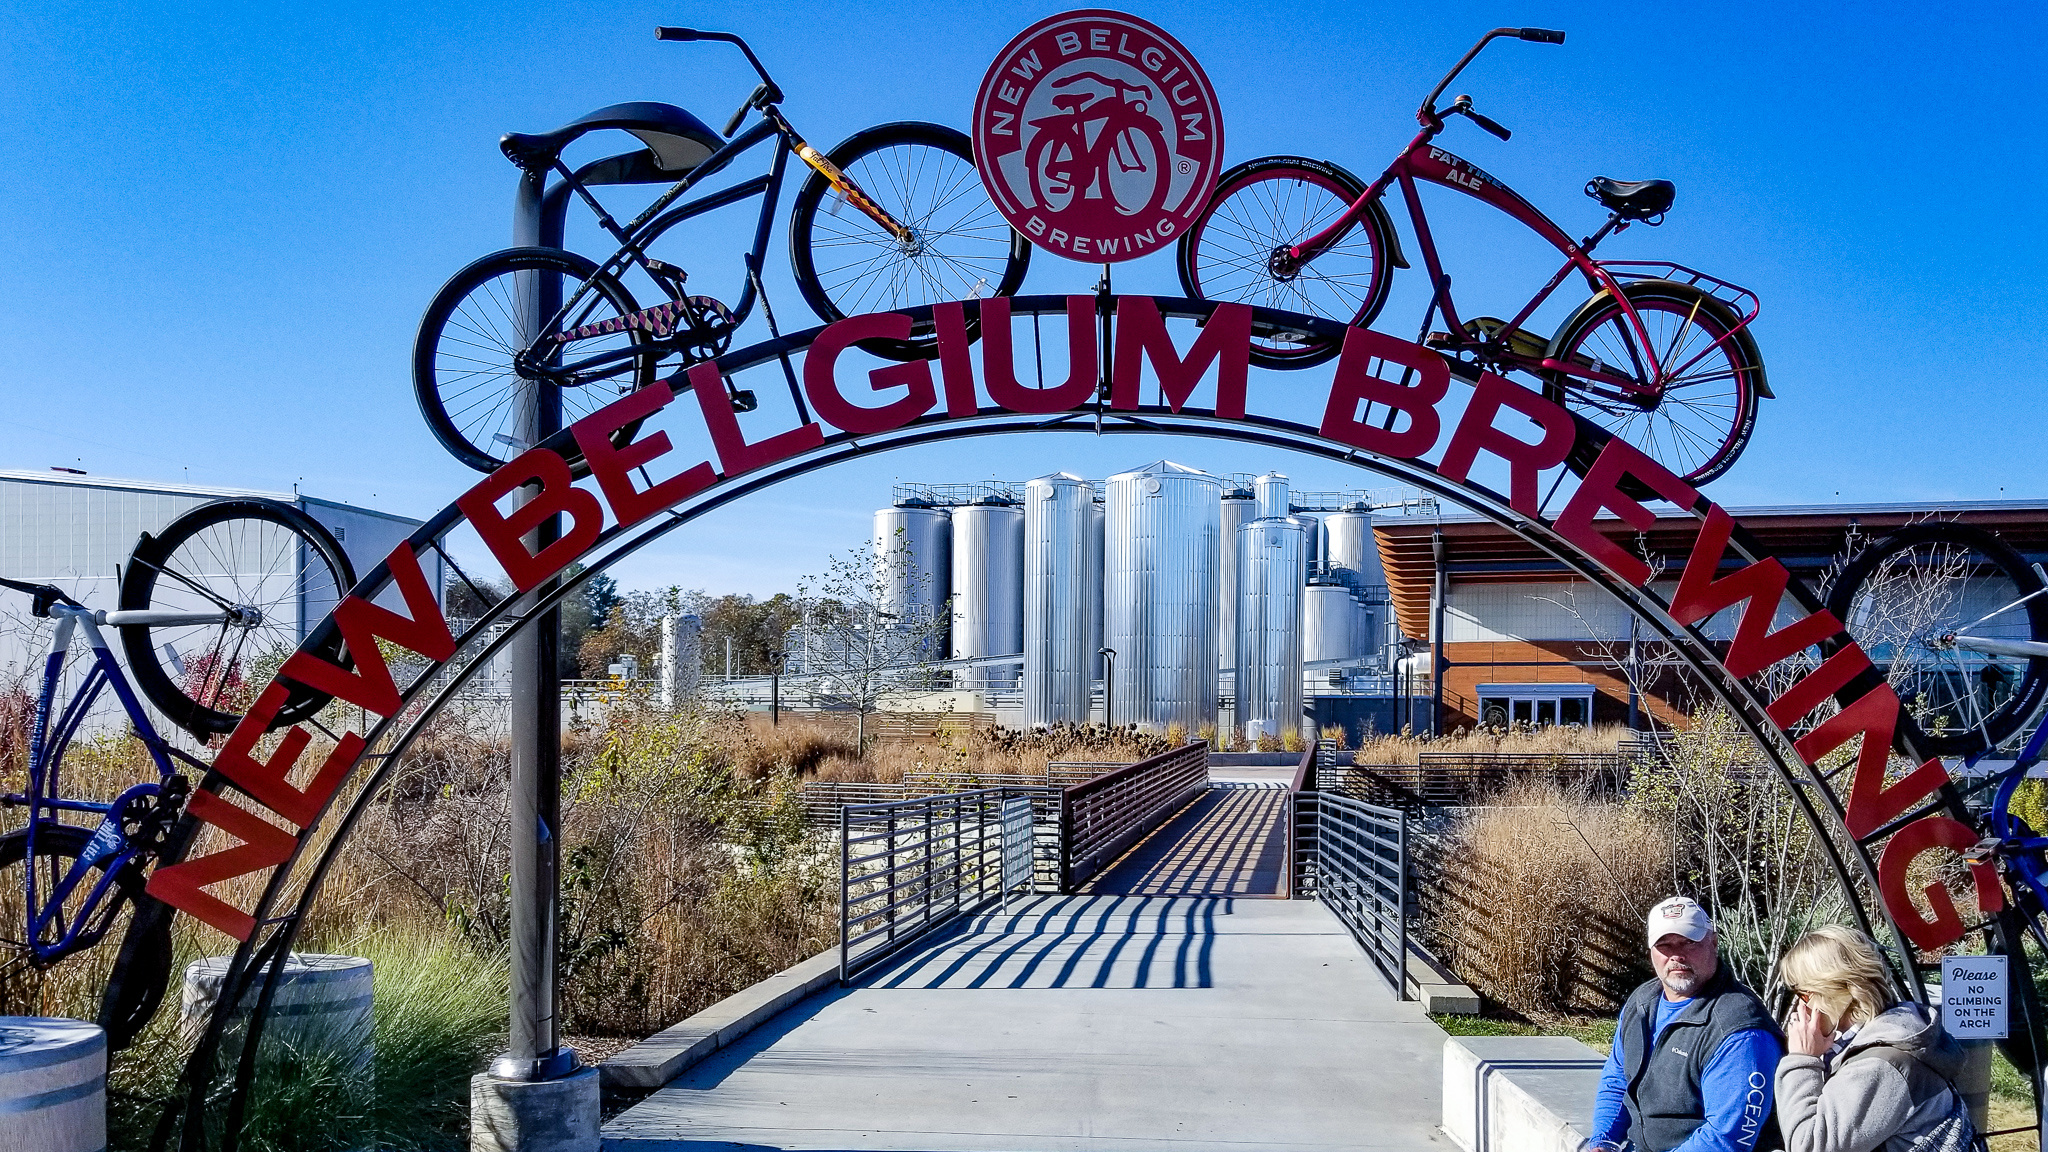 new Belgium brewery asheville nc